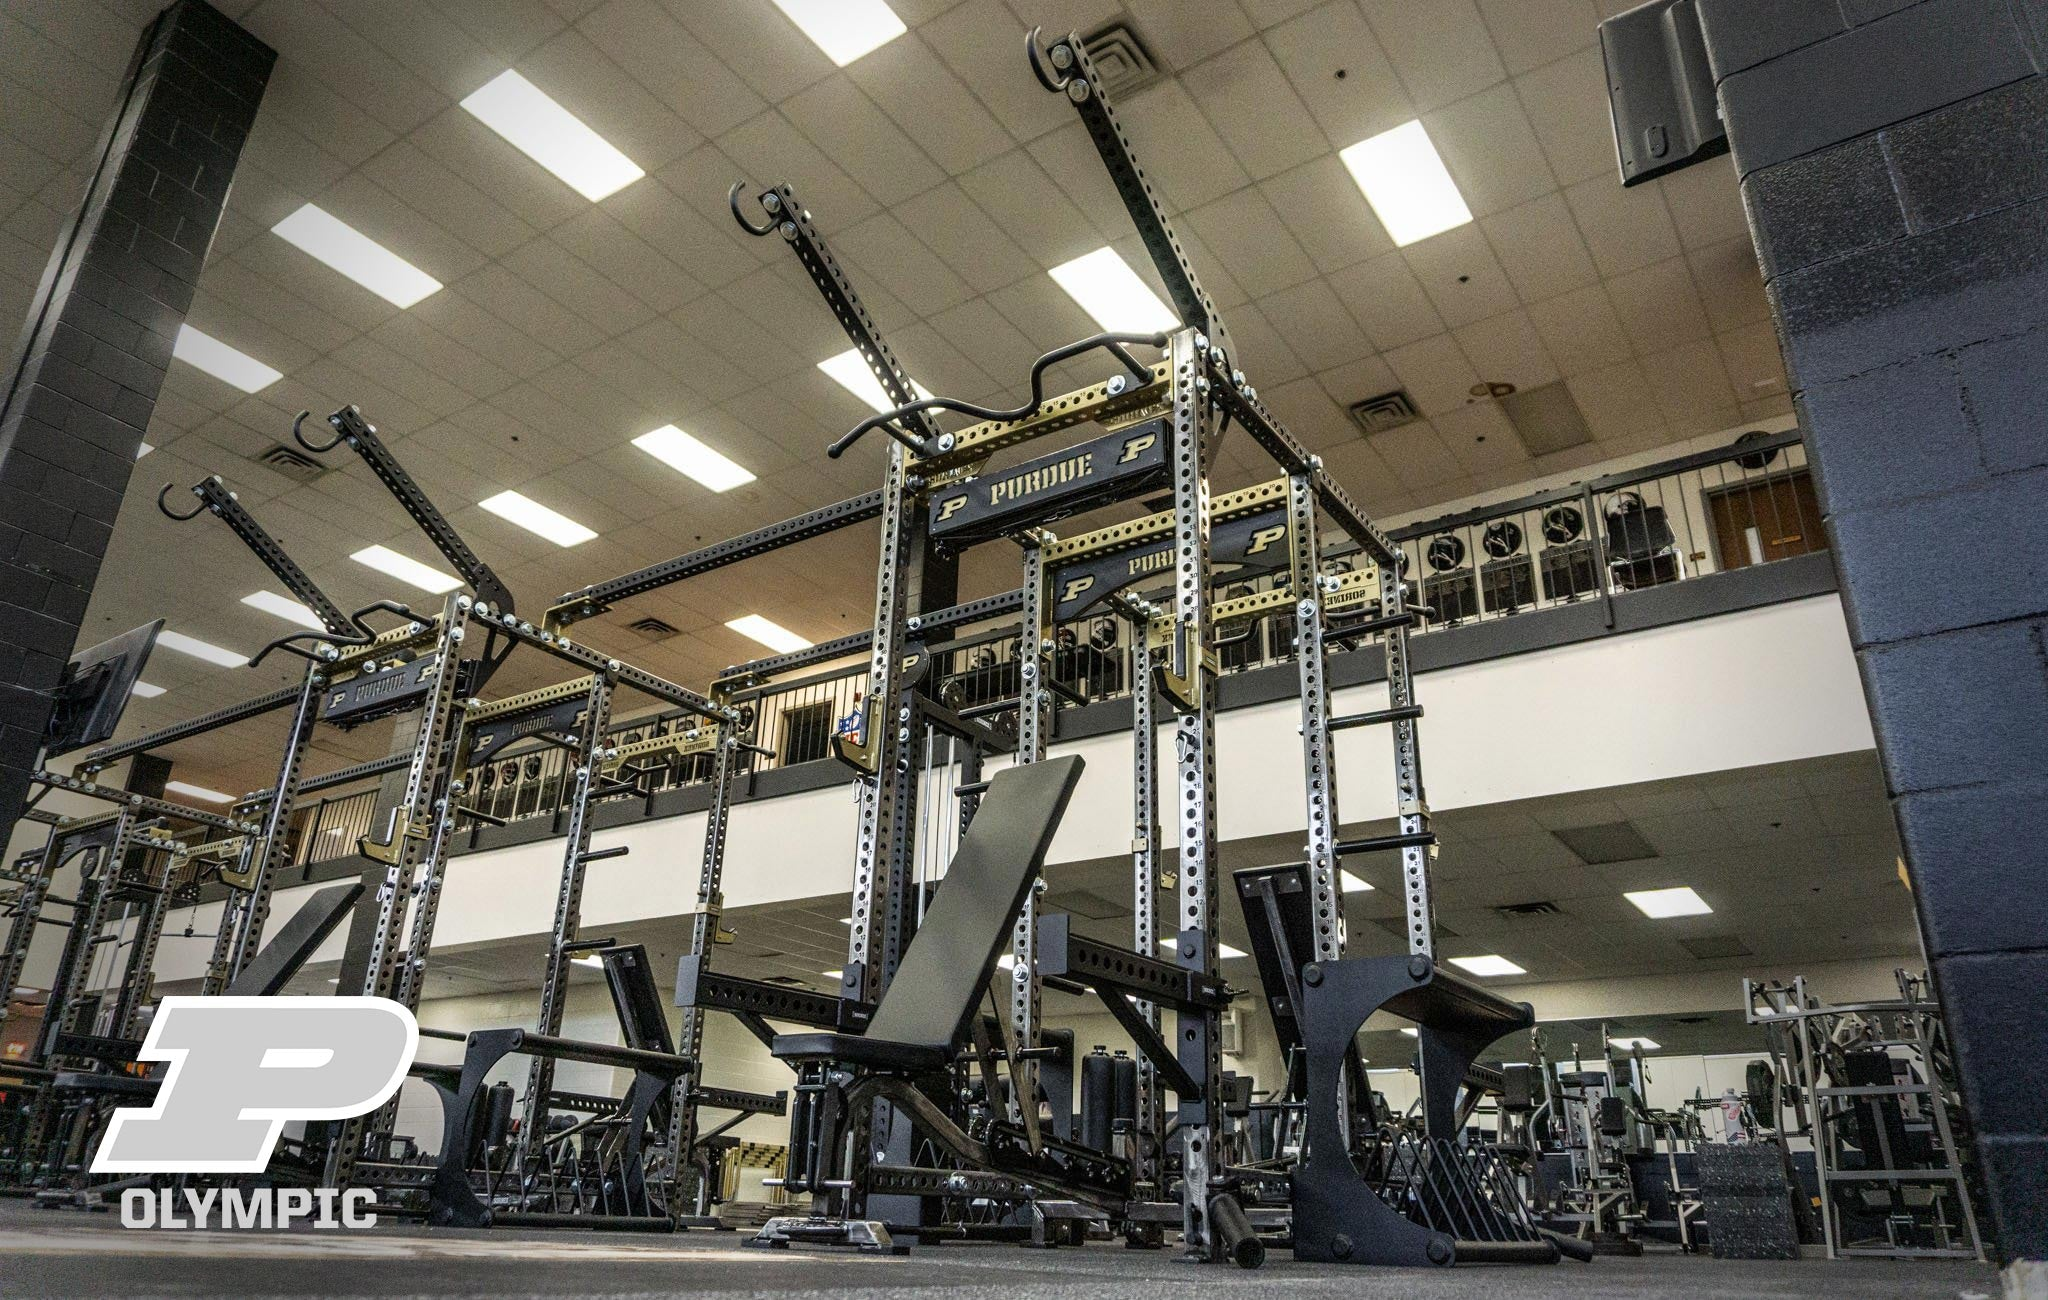 Purdue University Olympic Sorinex strength and conditioning facility